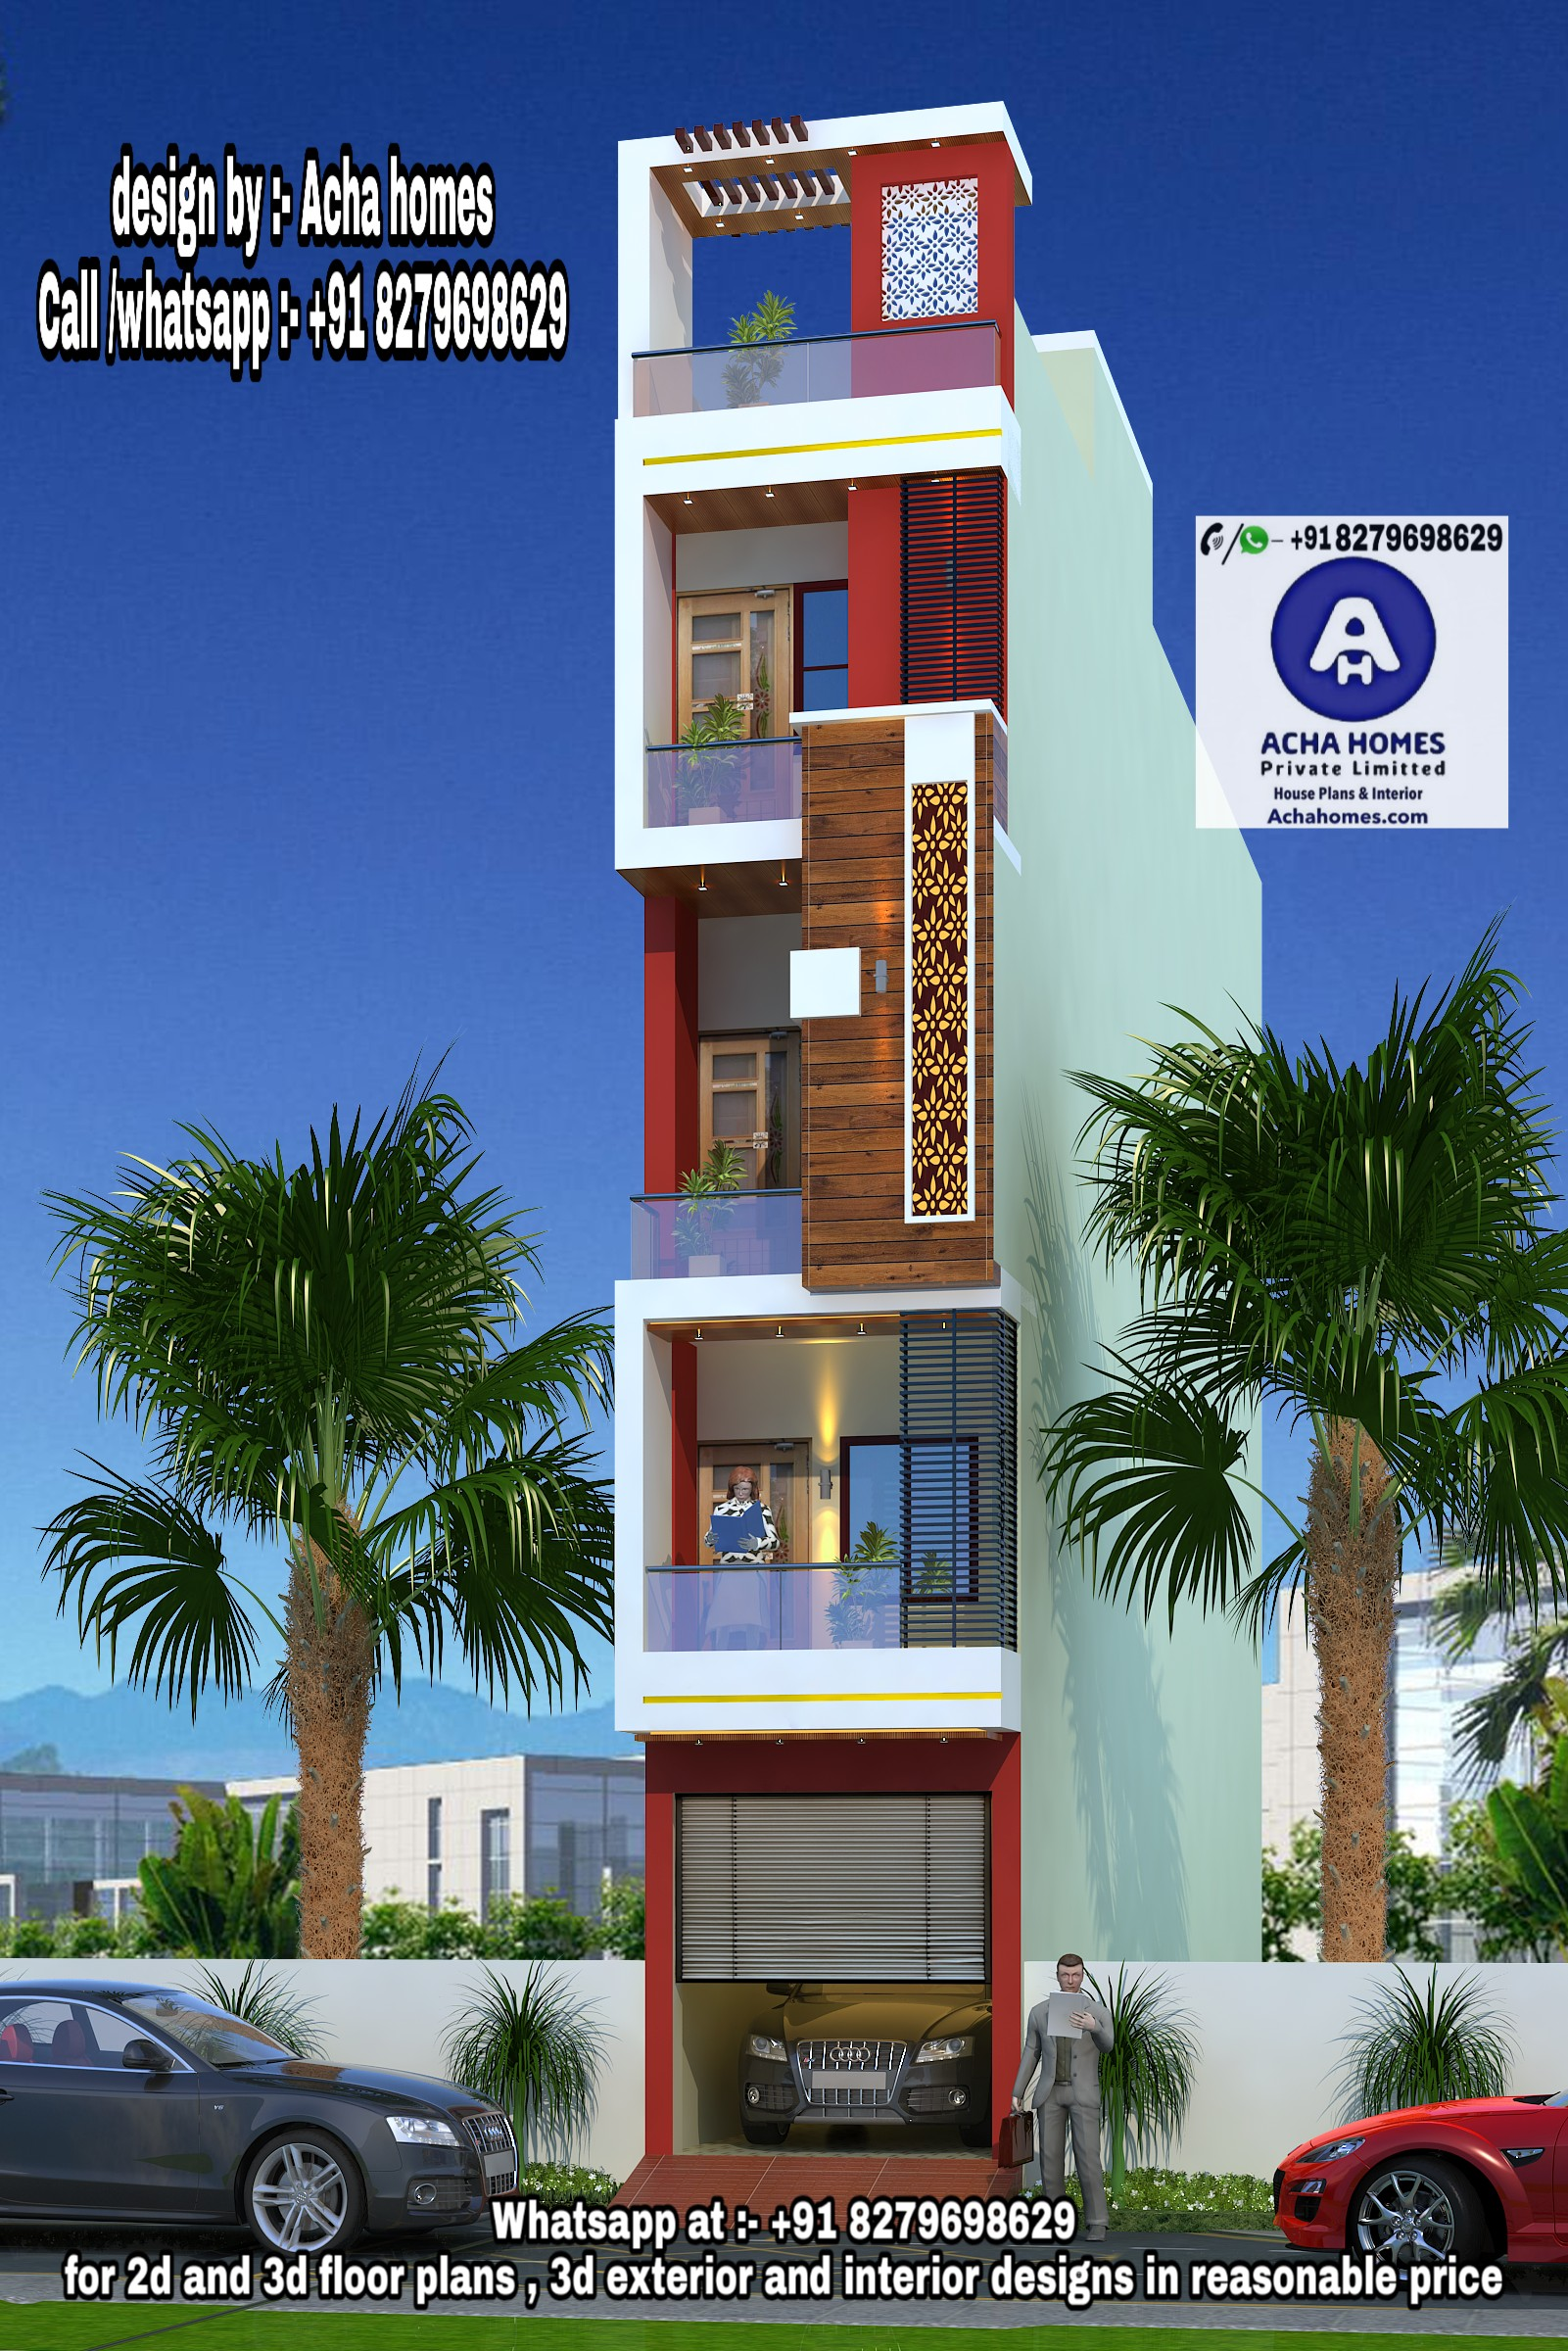 SOUTH INDIAN MODERN BUILDING DESIGN